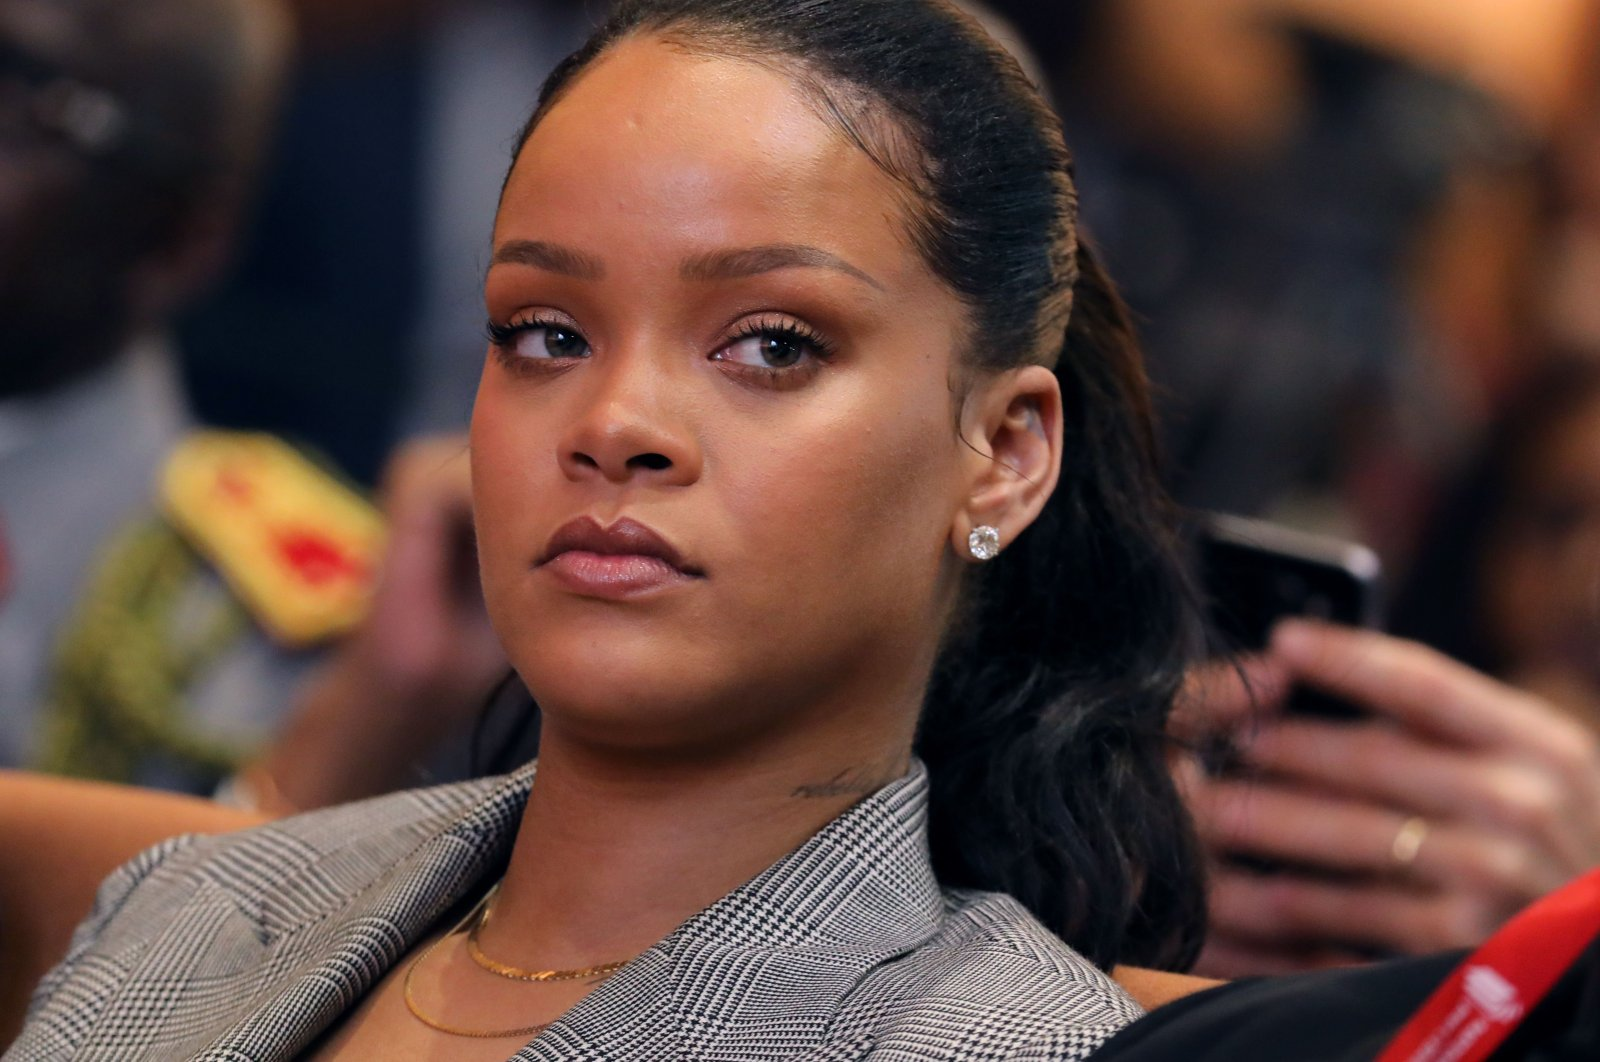 """Barbadian singer Rihanna attends the conference """"GPE financing conference, an investment in the future"""" organized by the global partnership for education in Dakar, Senegal, March 17, 2018. (AFP Photo)"""